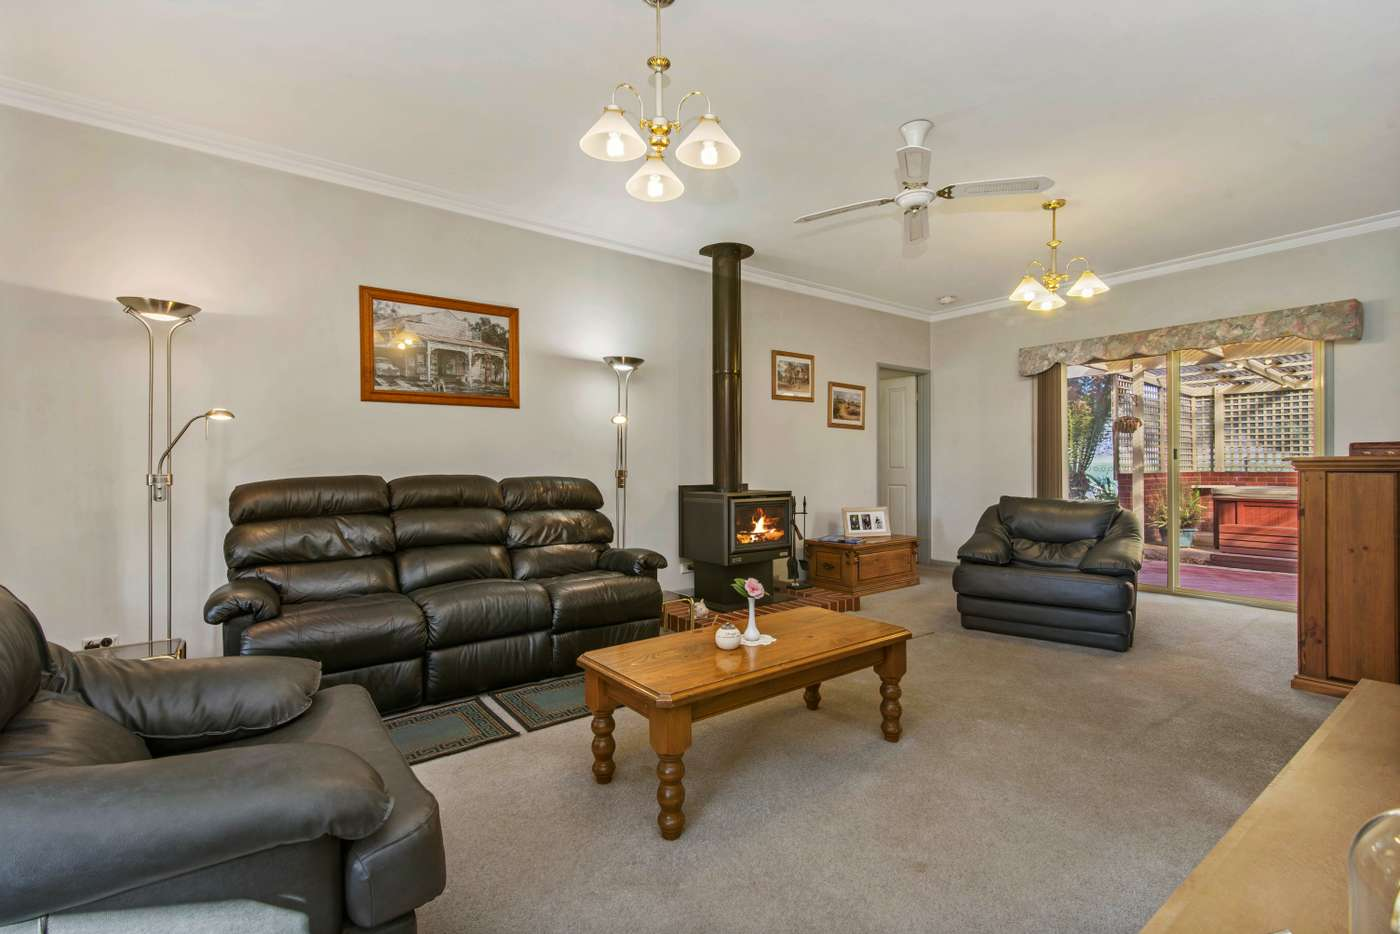 Fifth view of Homely house listing, 64 Pearces Road, Mandurang VIC 3551